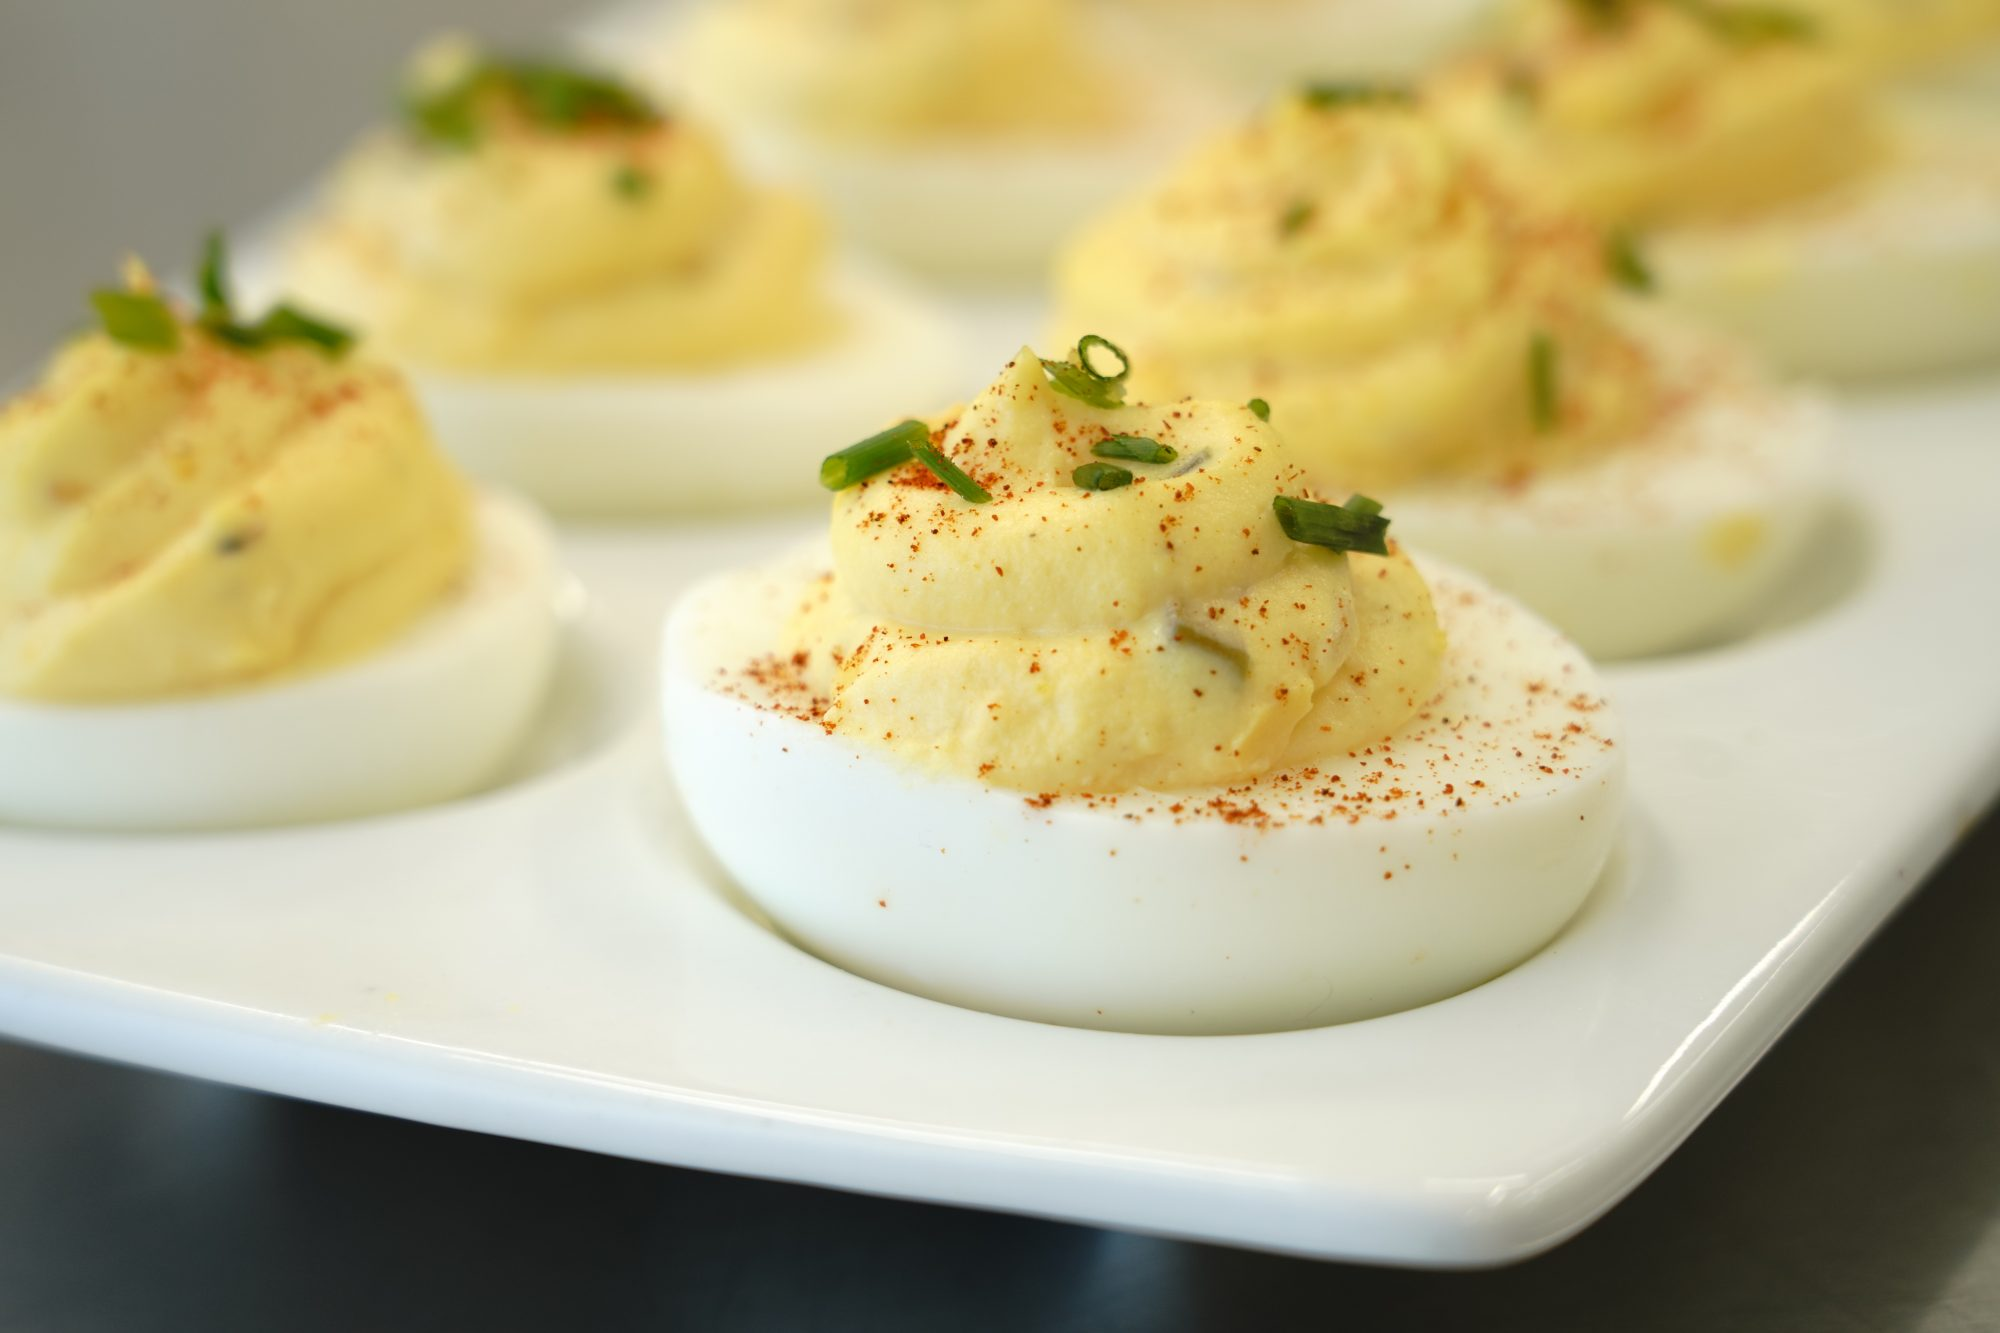 deviled eggs topped with paprika and minced chives on a deviled egg tray